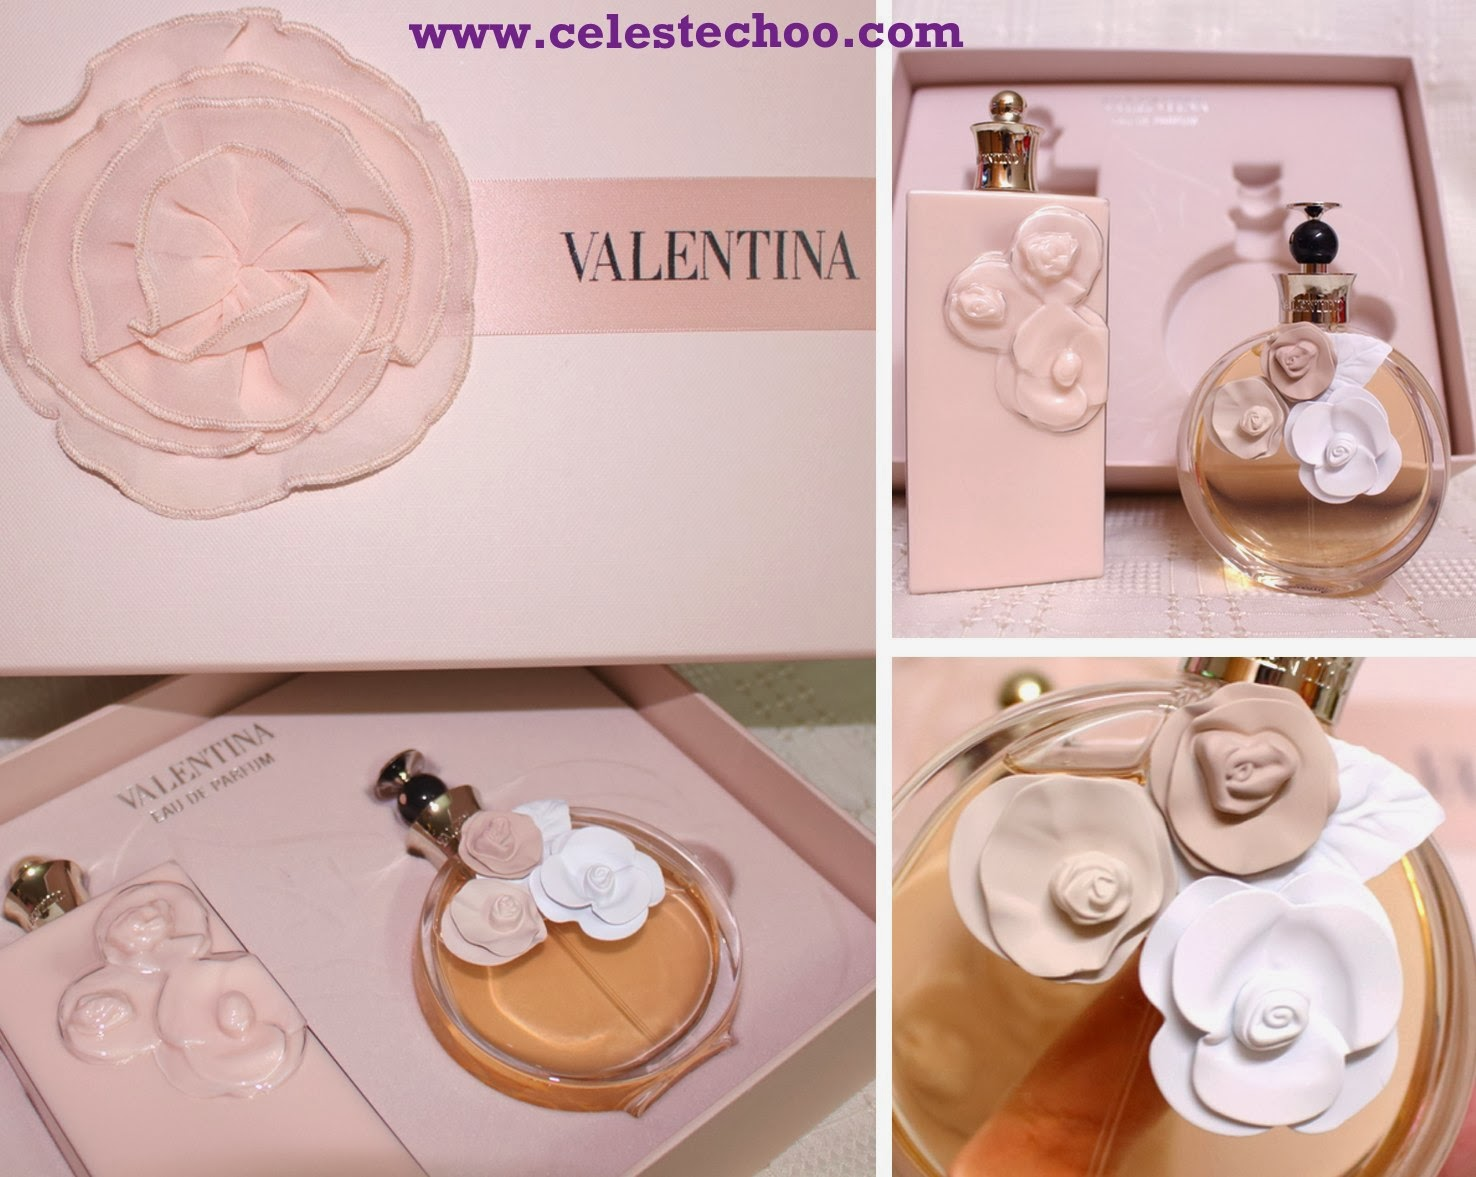 valentina-valentino-perfume-and-lotion-gift-set